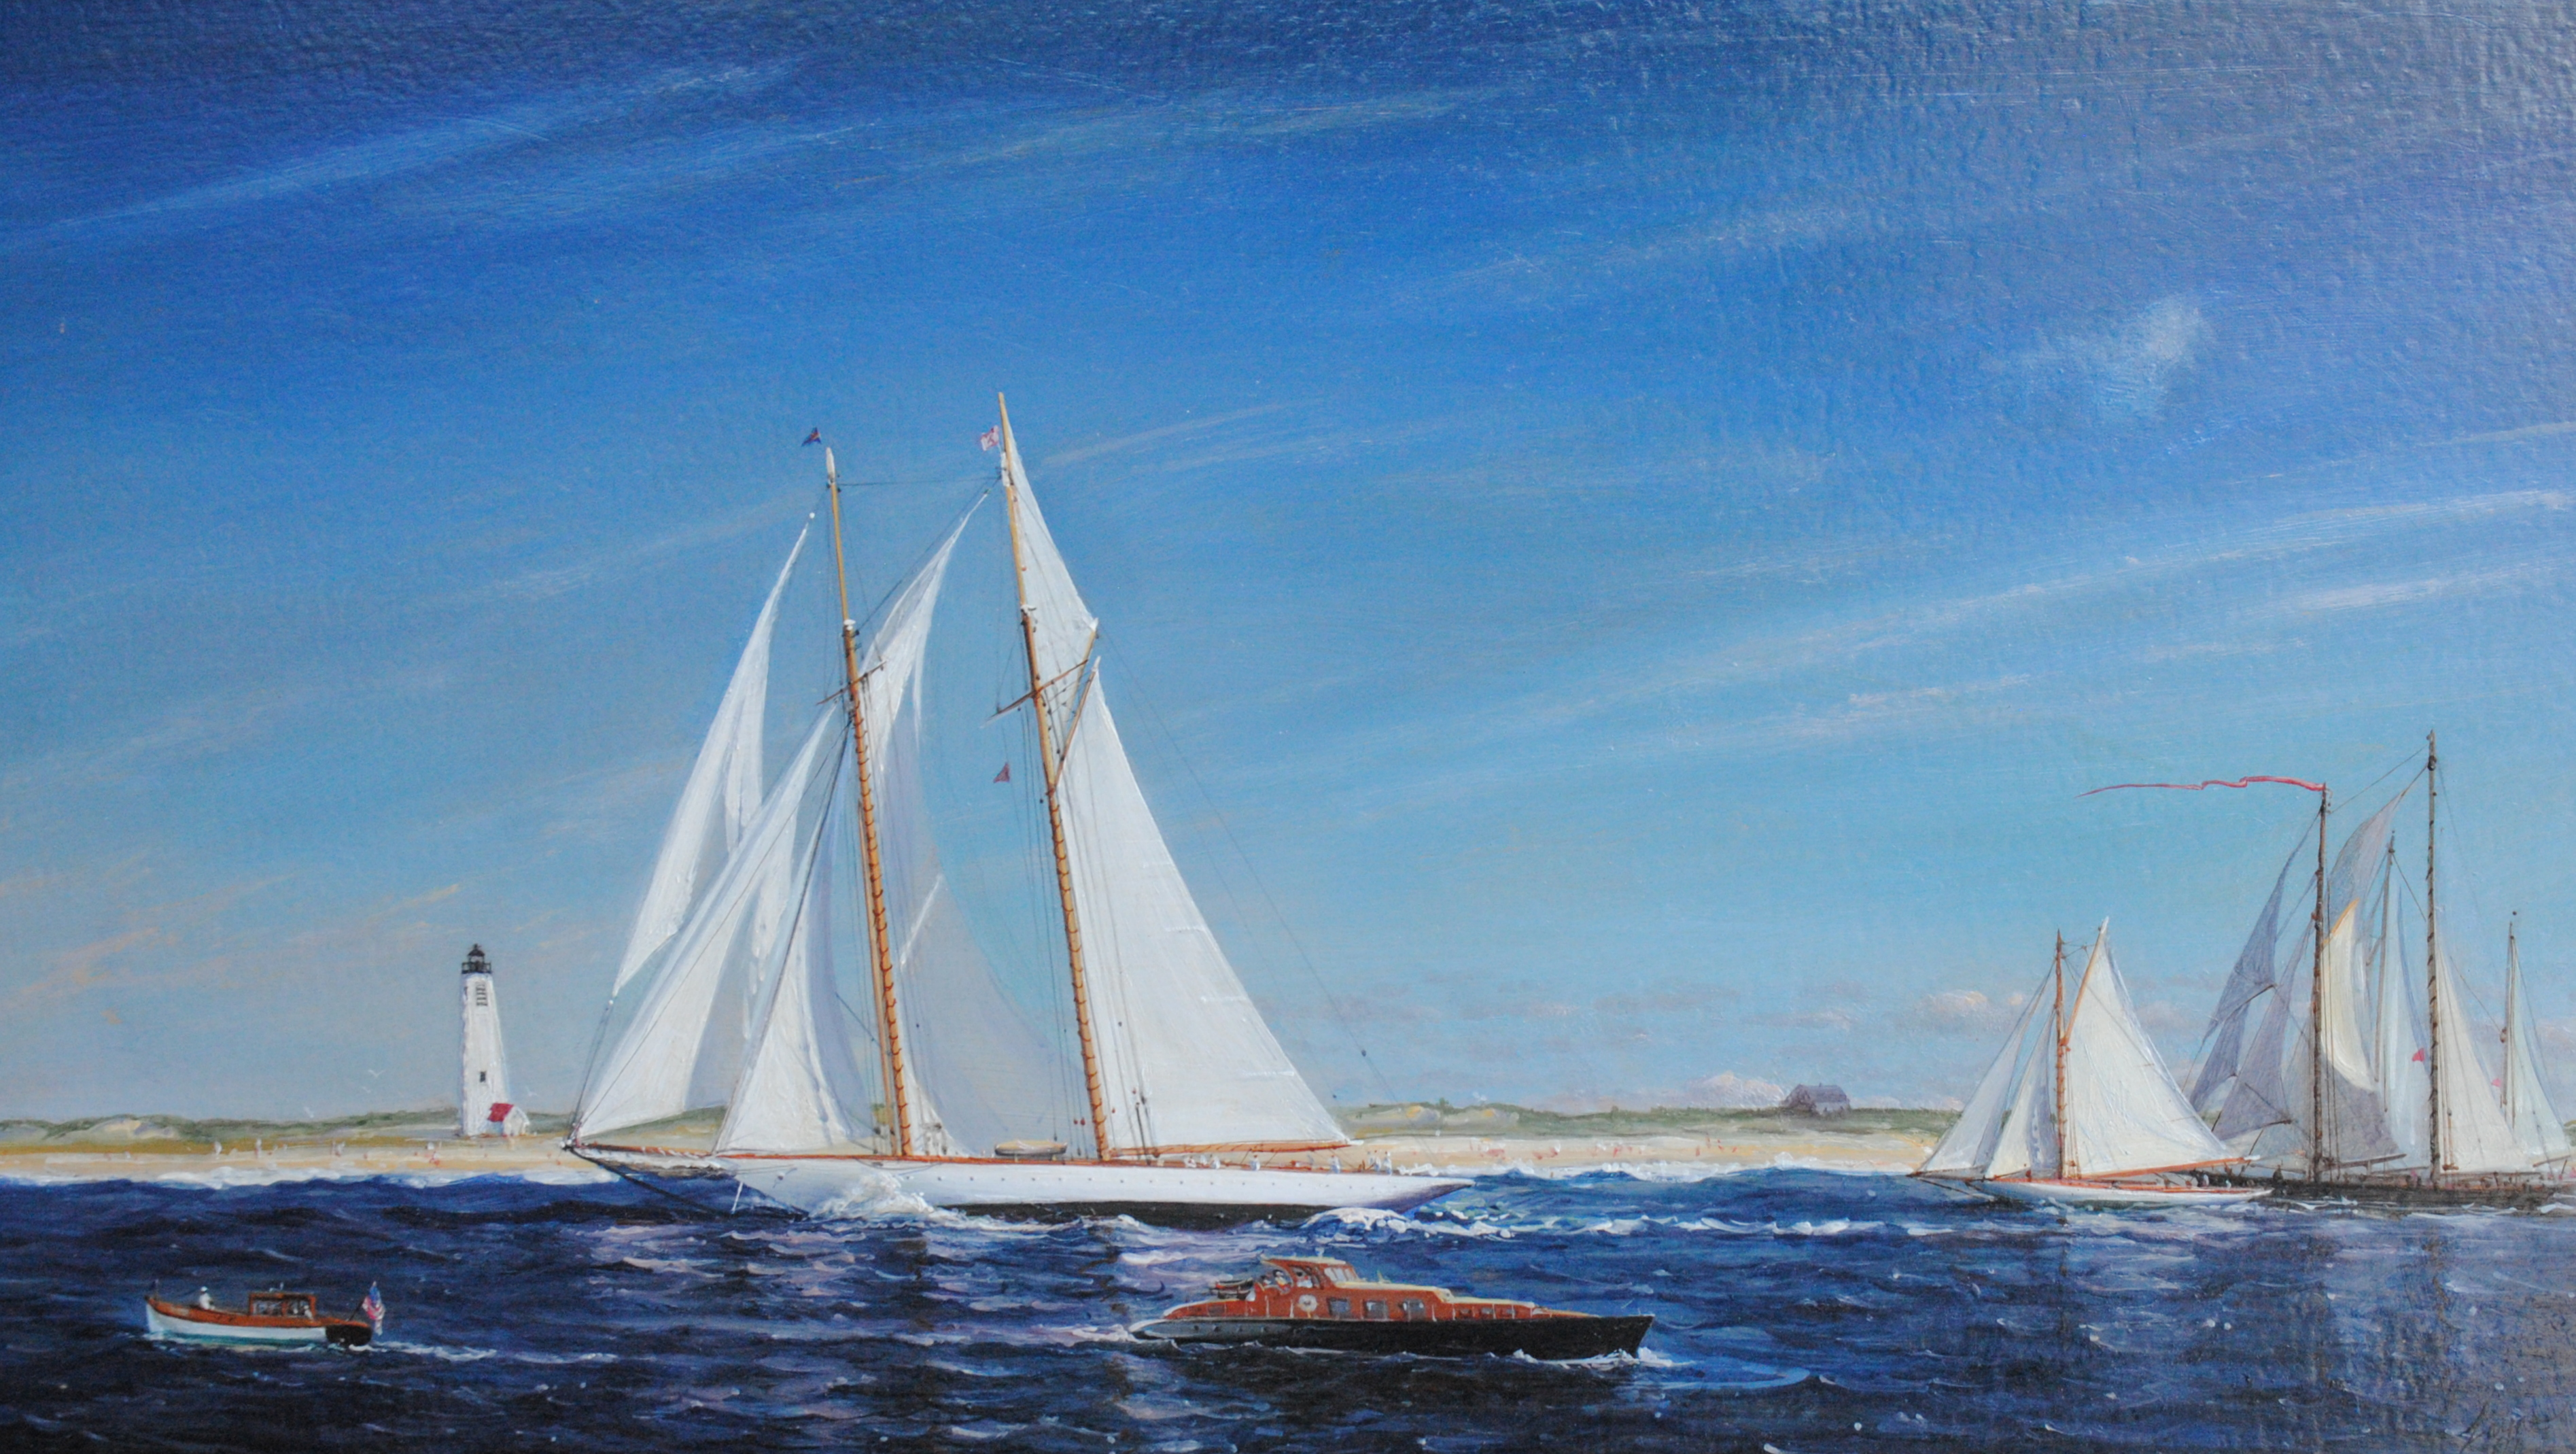 Opera House Cup, Nantucket - 22x36